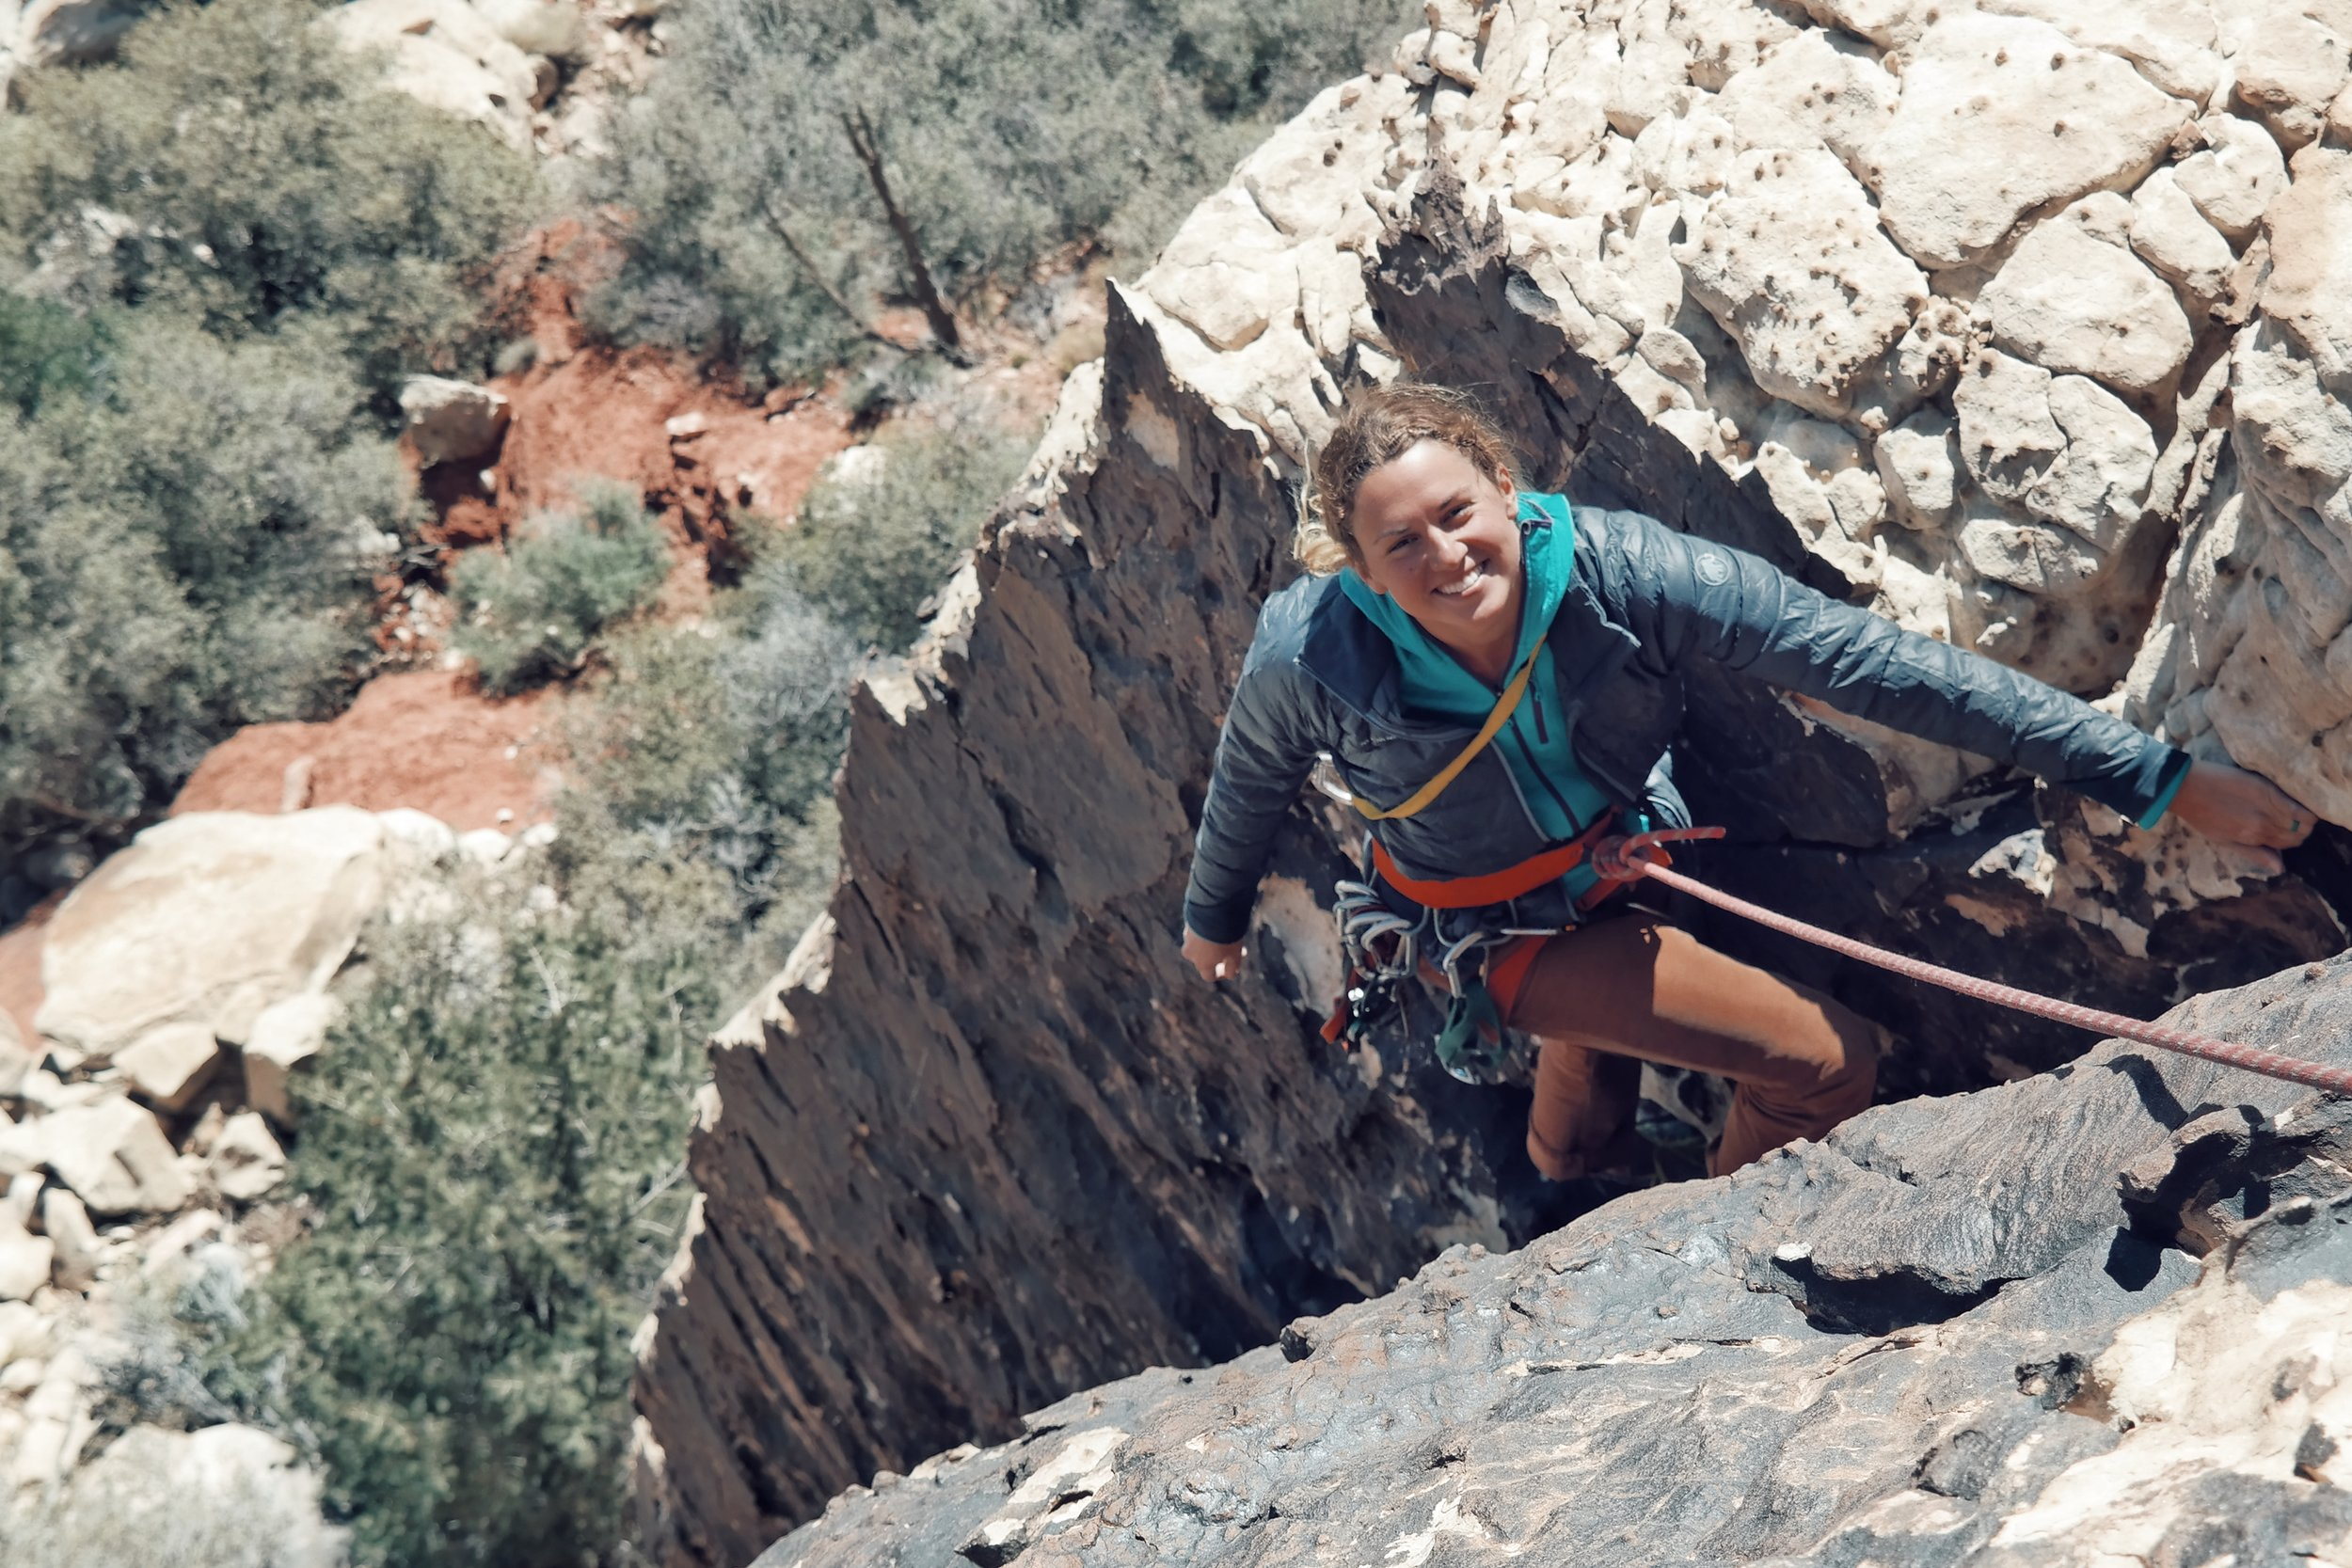 Rock climbing in southern Utah — photo by Keith Madia